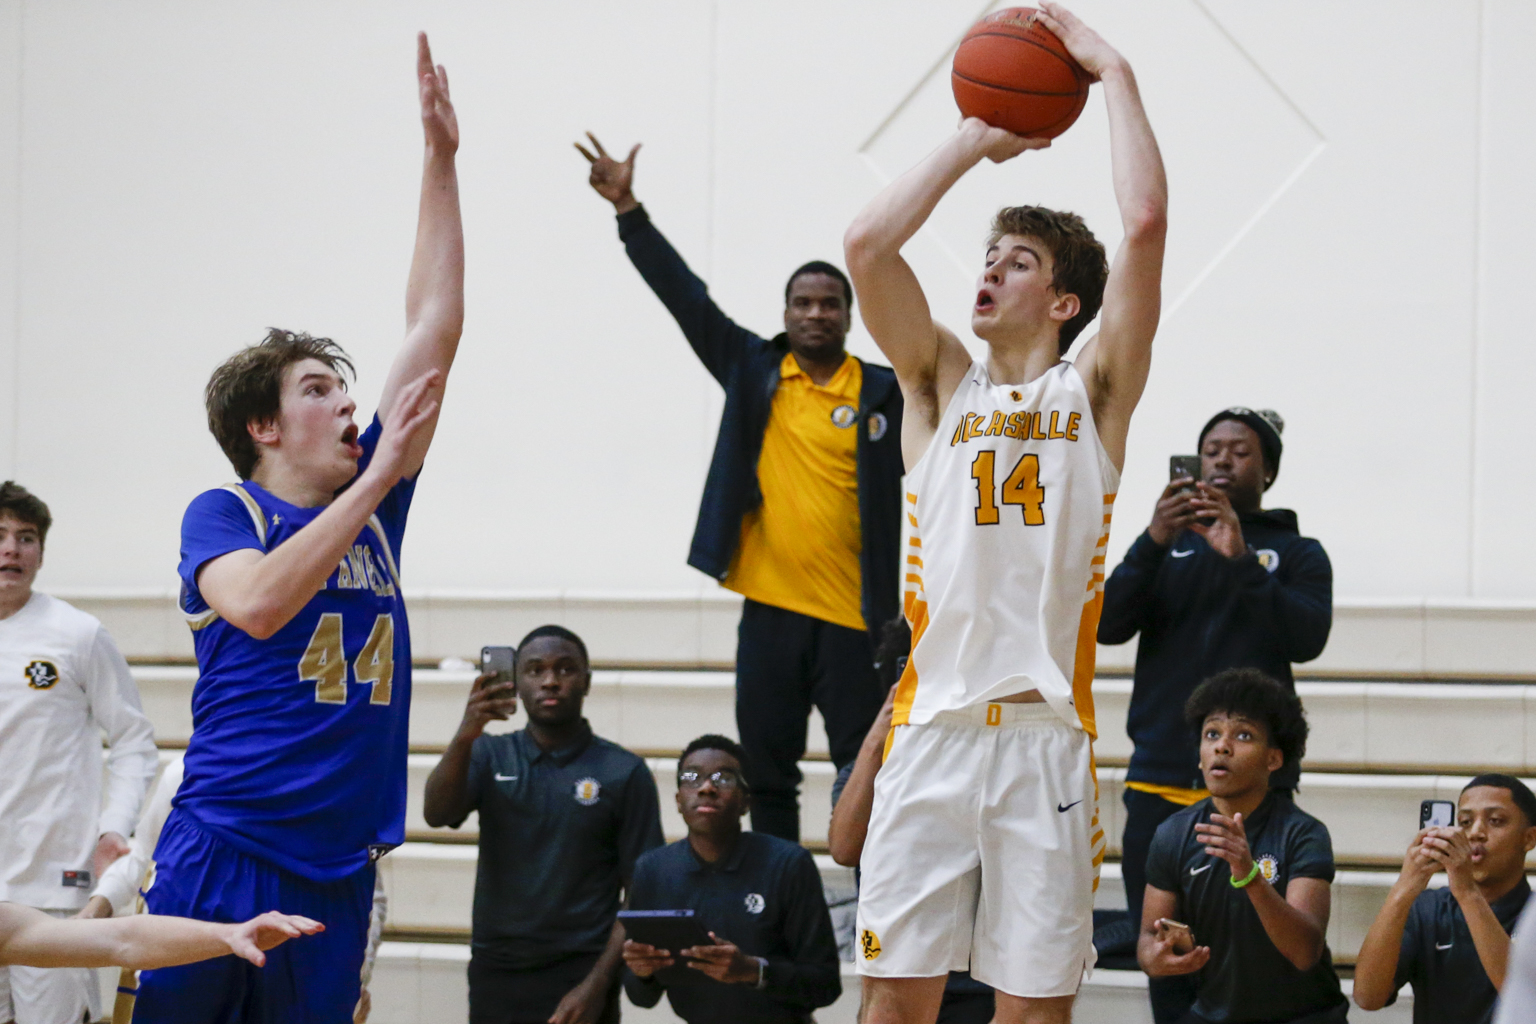 DeLaSalle's Cade Haskins (14) puts up the game-winning three-point shot at the buzzer to defeat Holy Angels 59-56 Friday night in Richfield. Haskins had a team-high 20 points for the Islanders. Photo by Jeff Lawler, SportsEngine